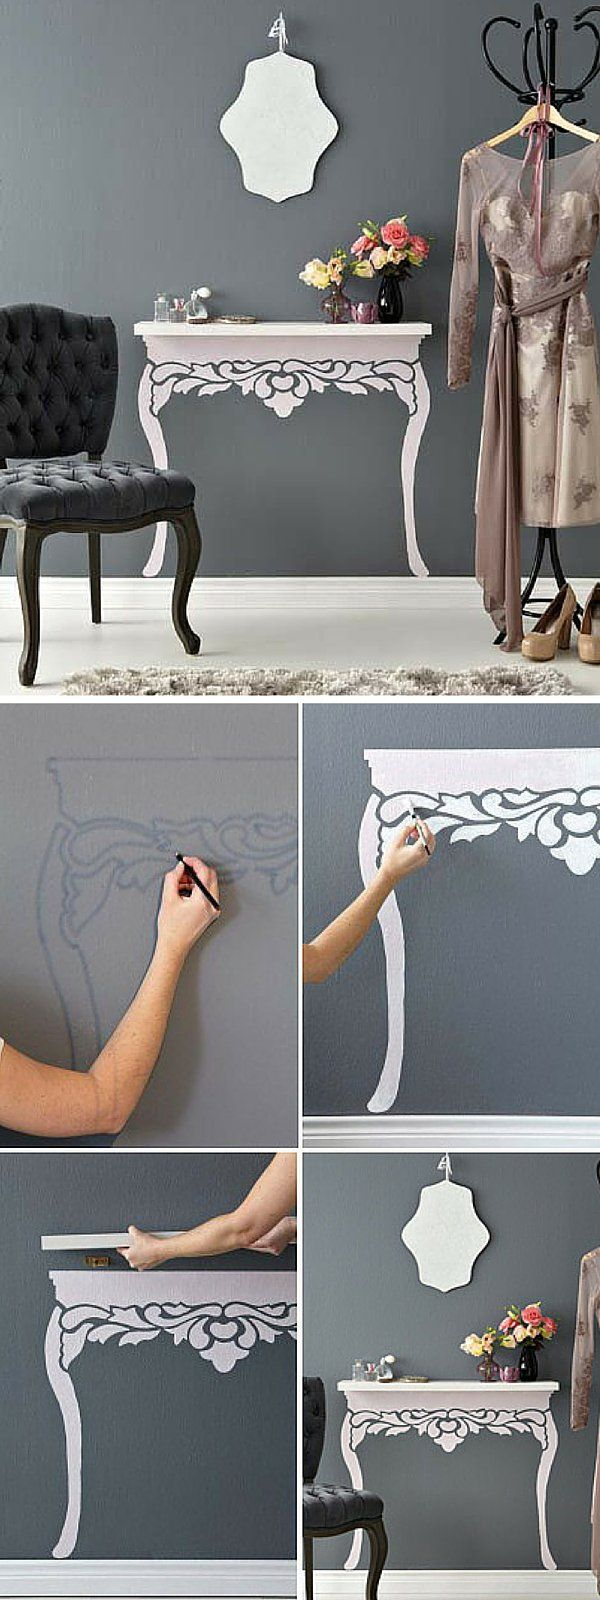 Check out the tutorial: #DIY Floating Shelf Wall Art #crafts #decor